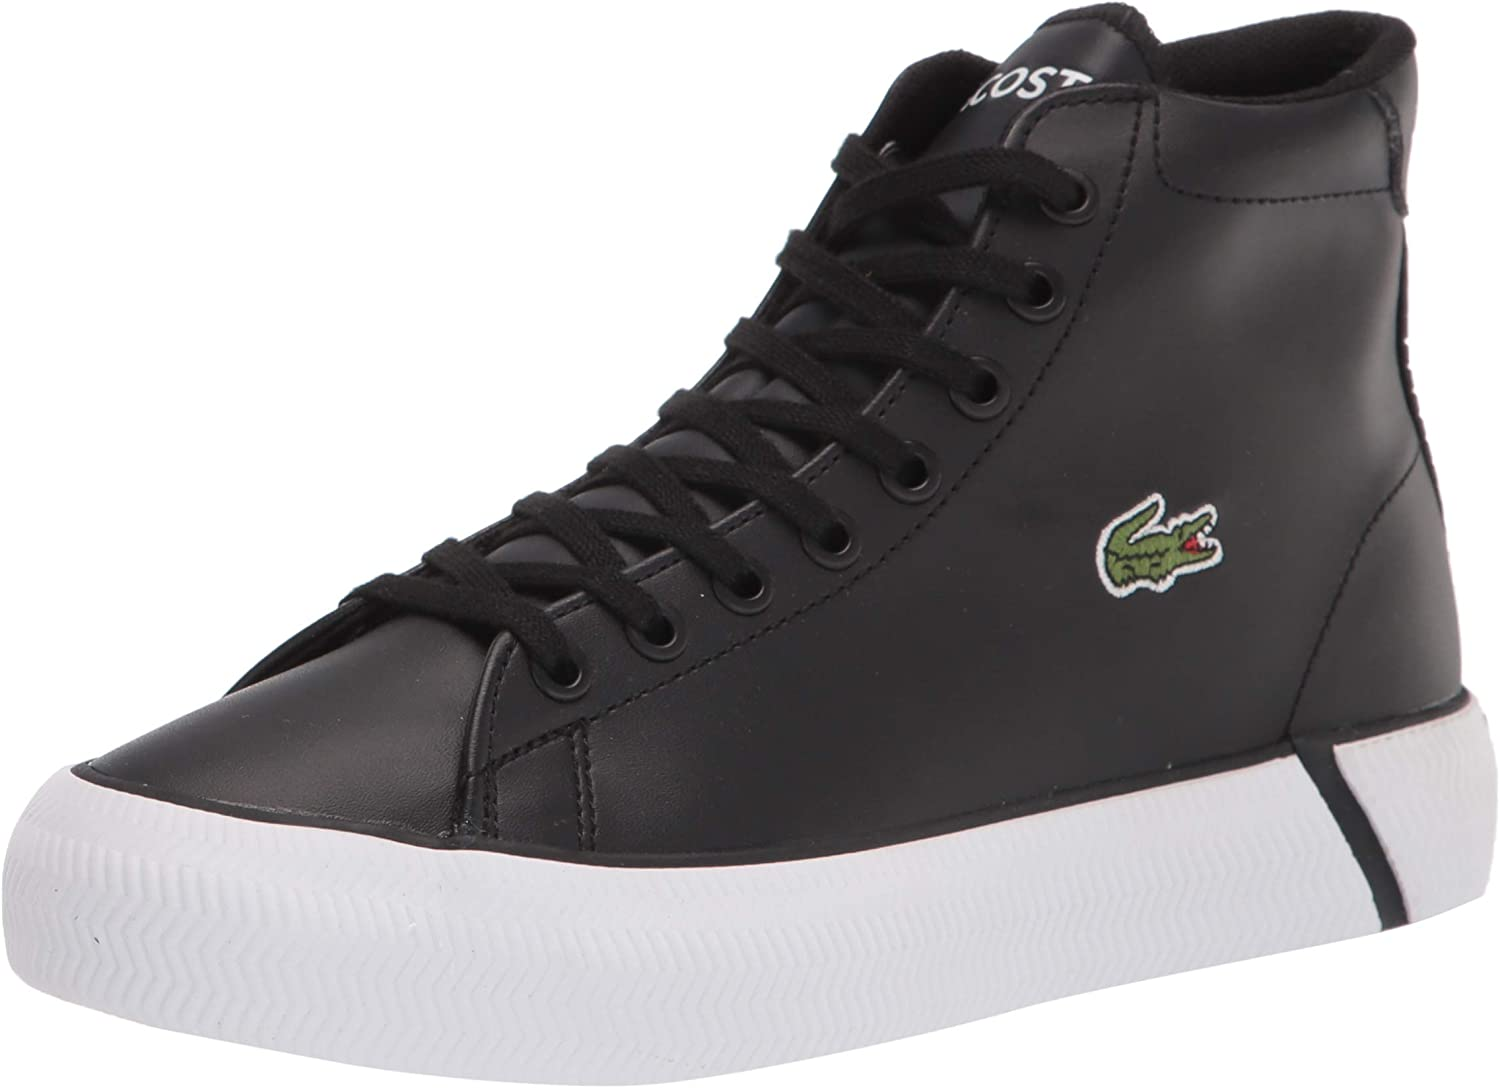 Lacoste Unisex-Child gift Kid's Gripshot High 2 Sneaker 0120 MID Price reduction Top